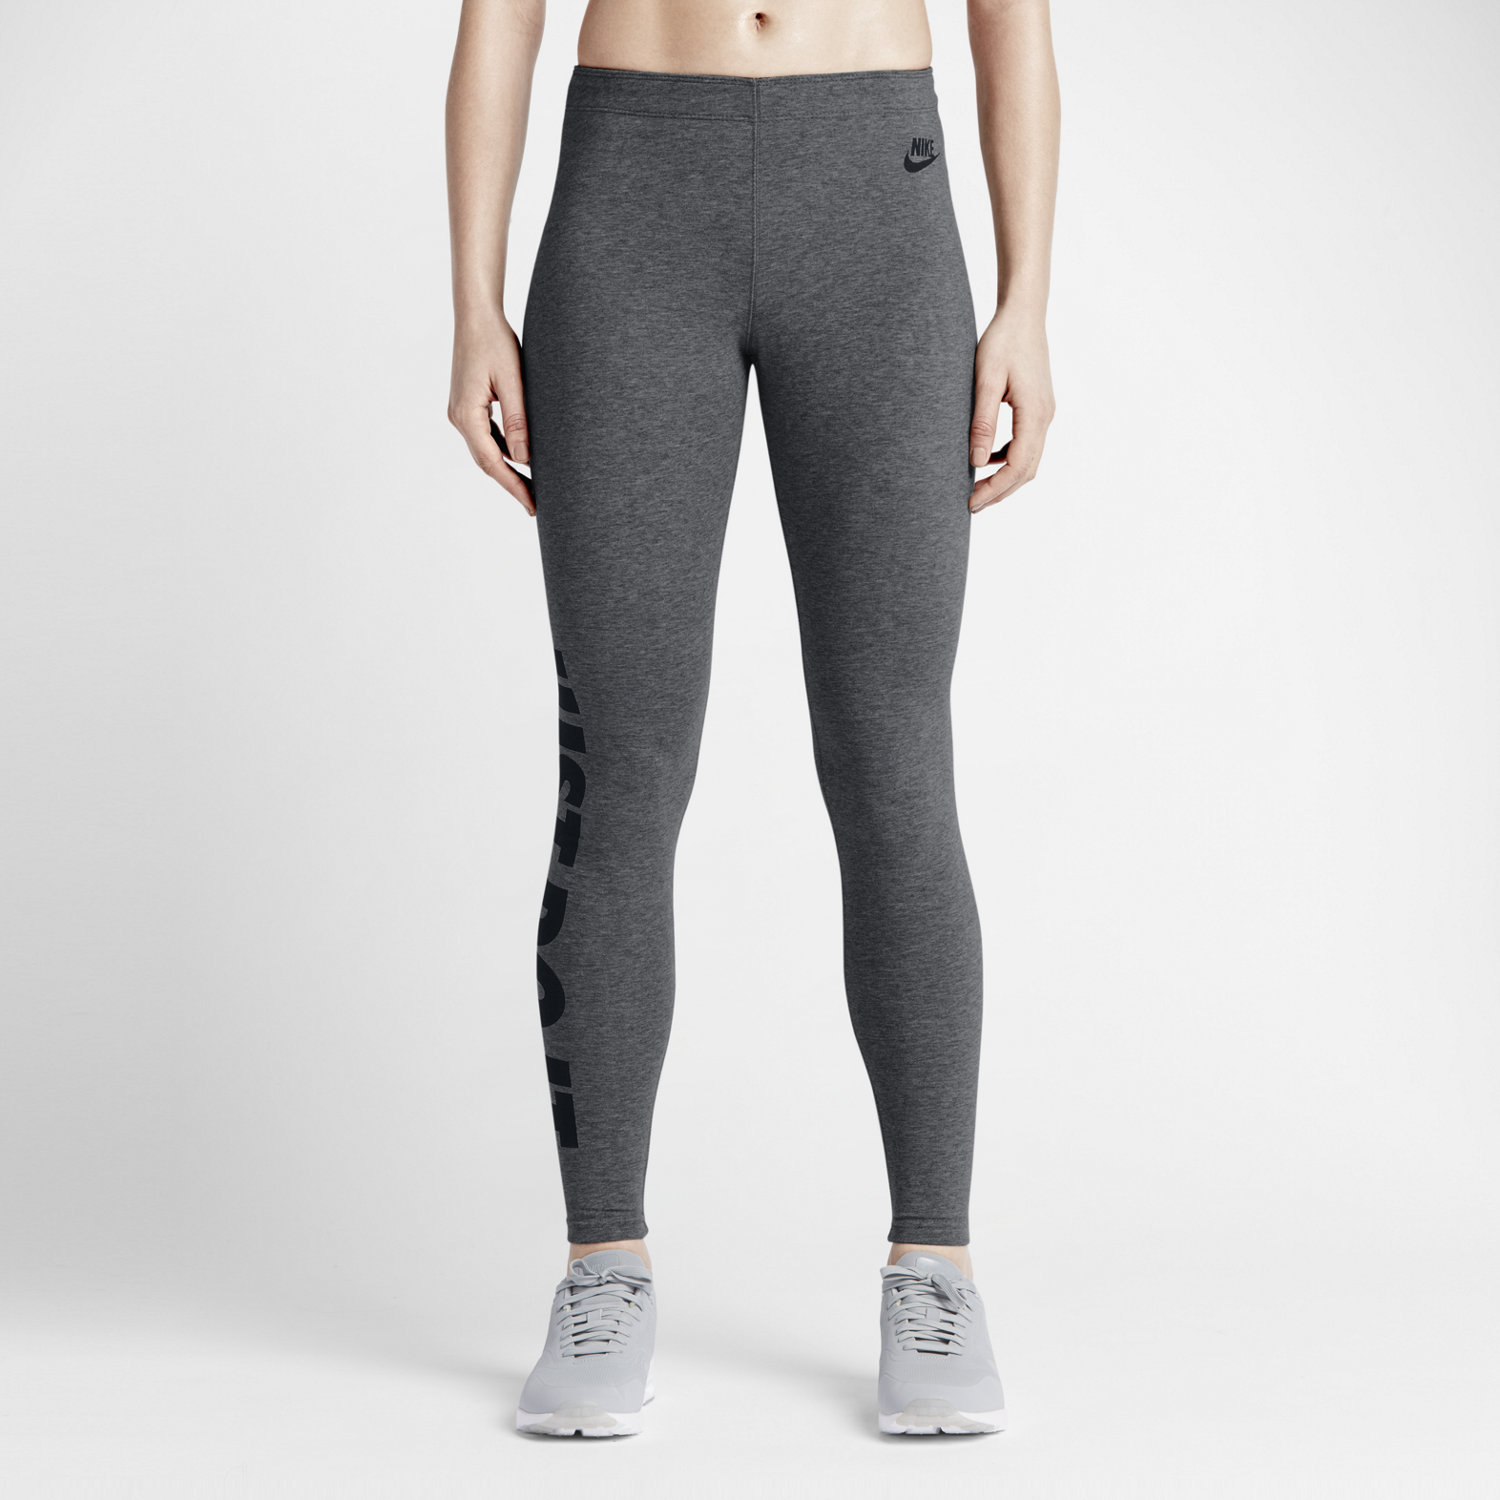 nike air max hyped avis - Nike Leg-A-See Just Do It Women's Leggings. Nike.com